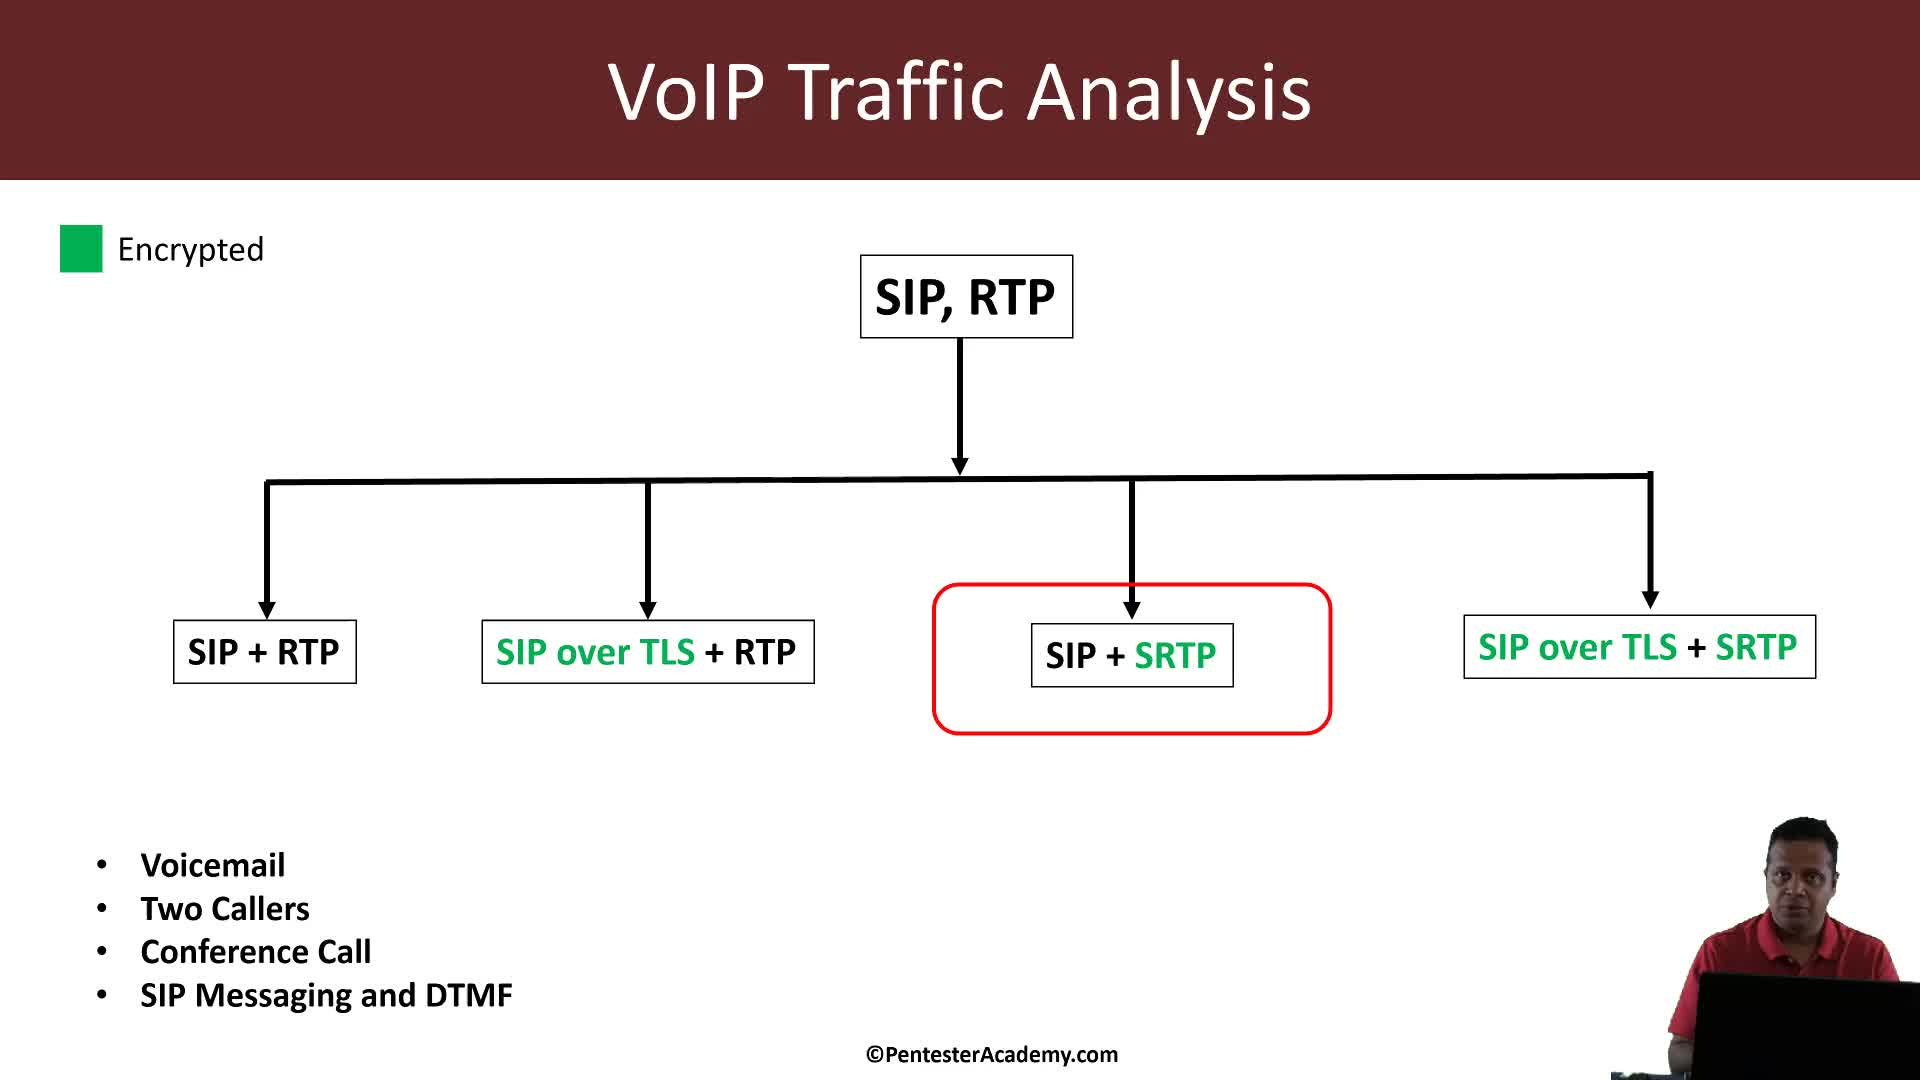 SIP + SRTP: Decrypt Voicemail Traffic Part 1